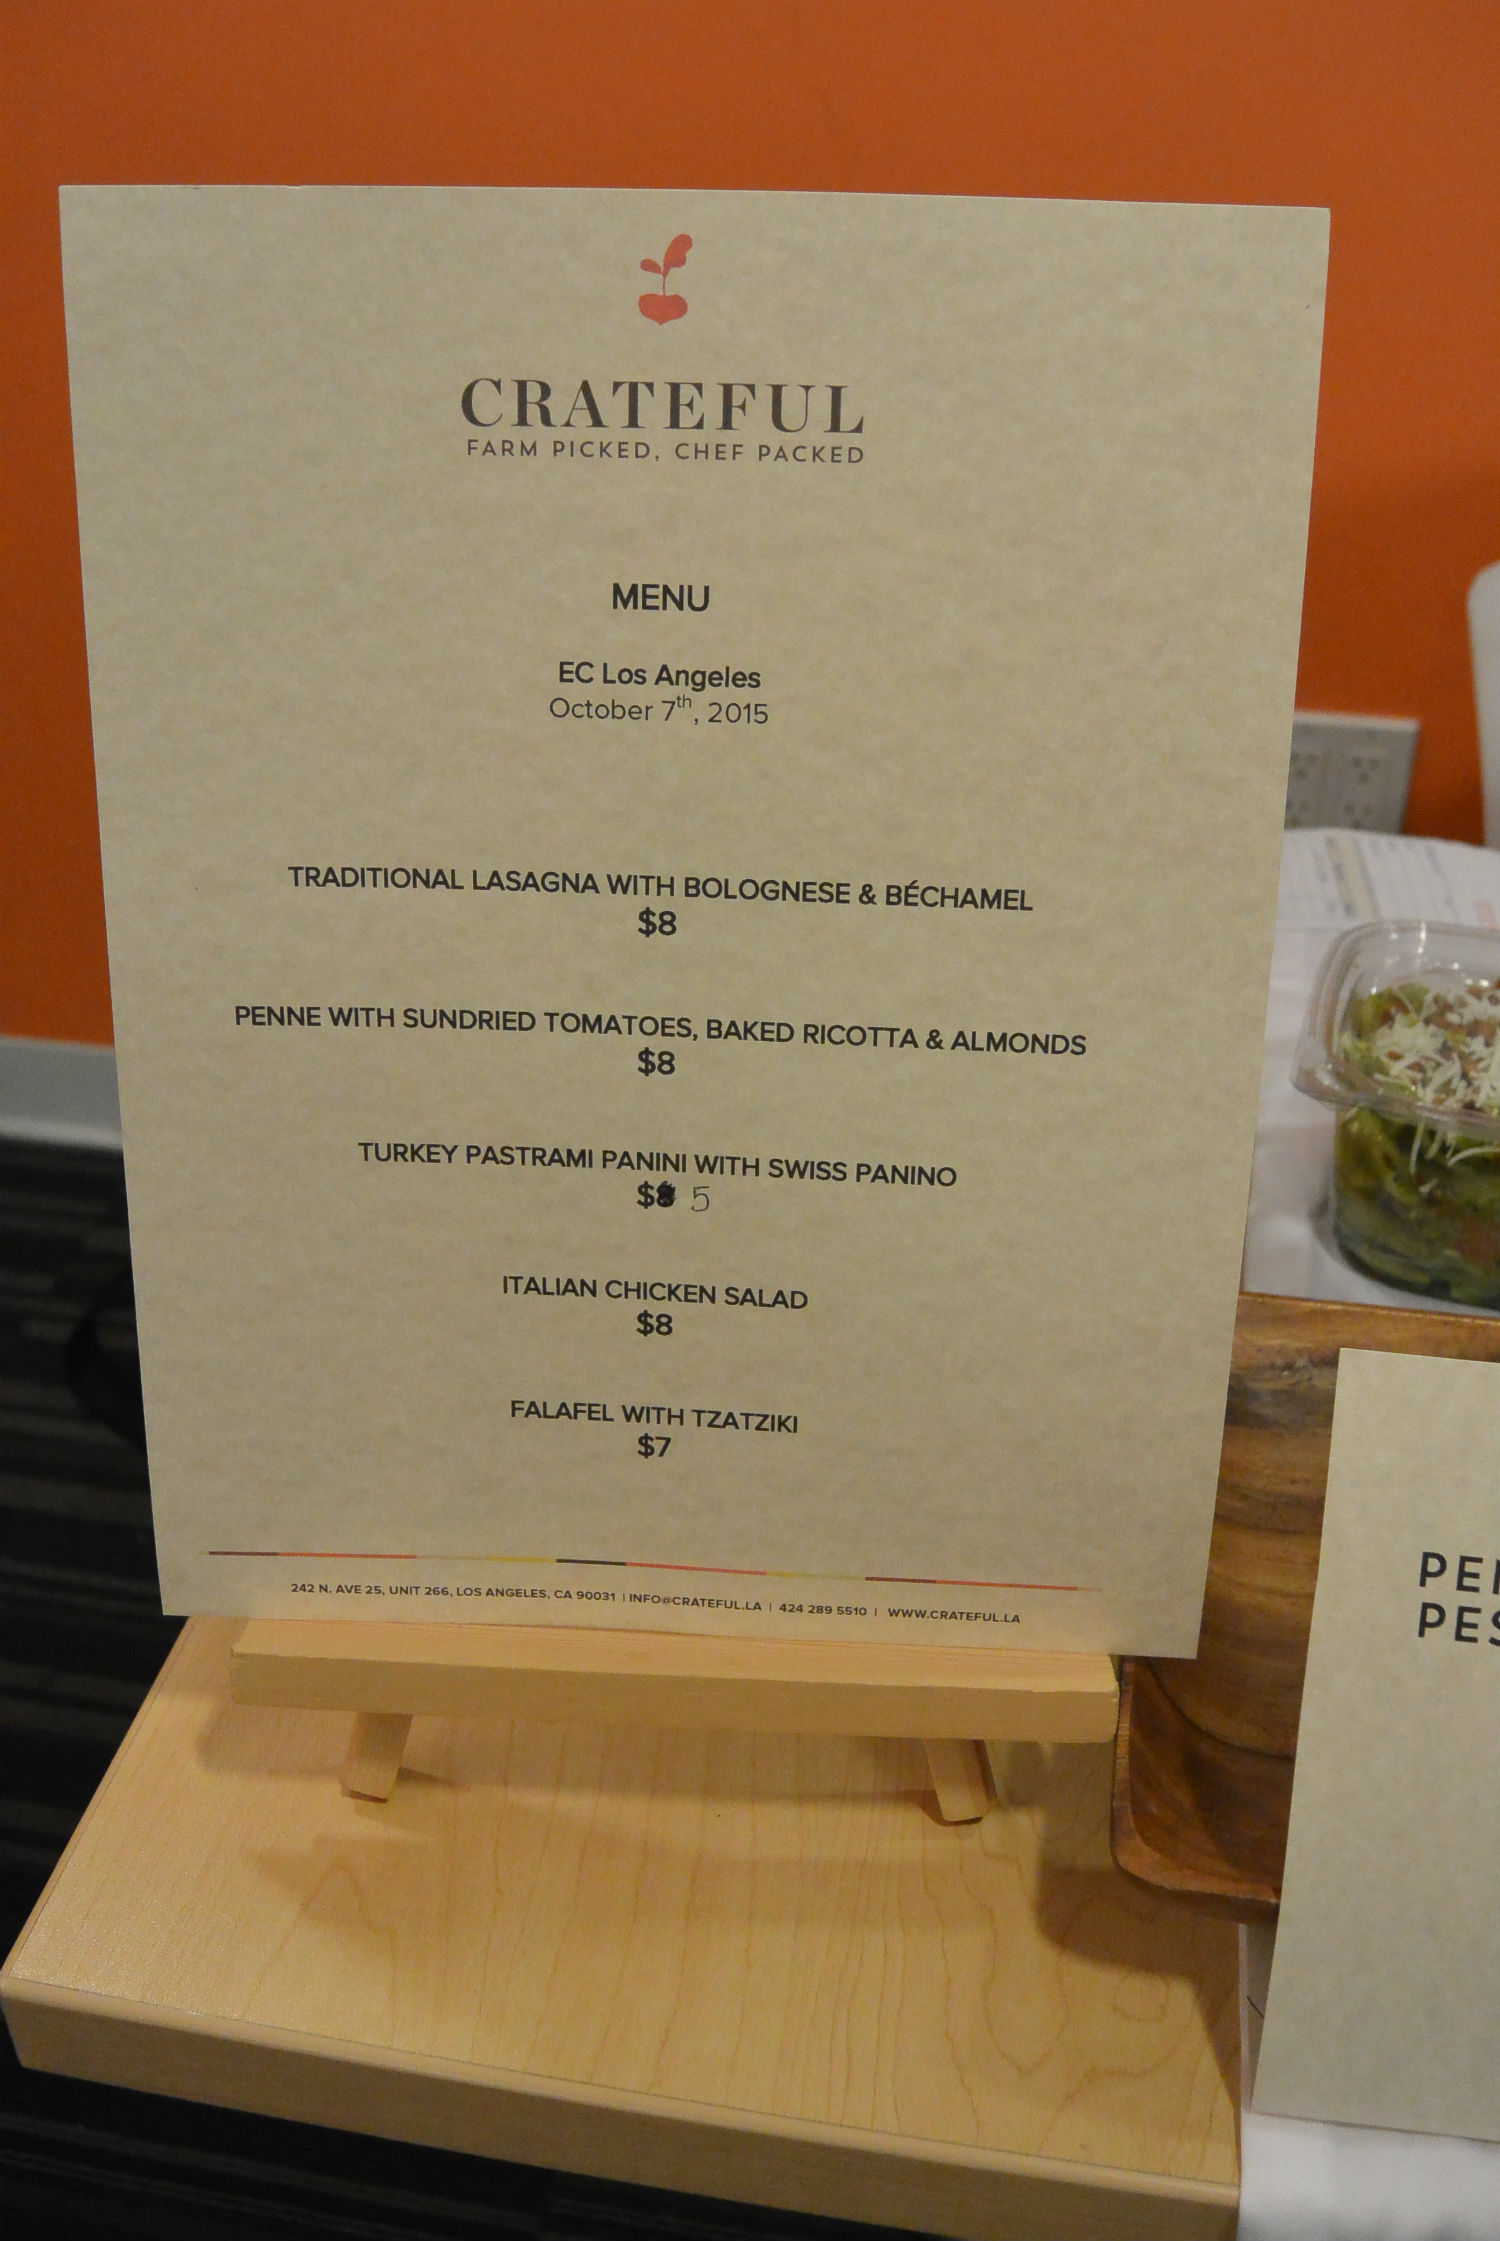 Crateful's October 7 menu offered at ECLA.